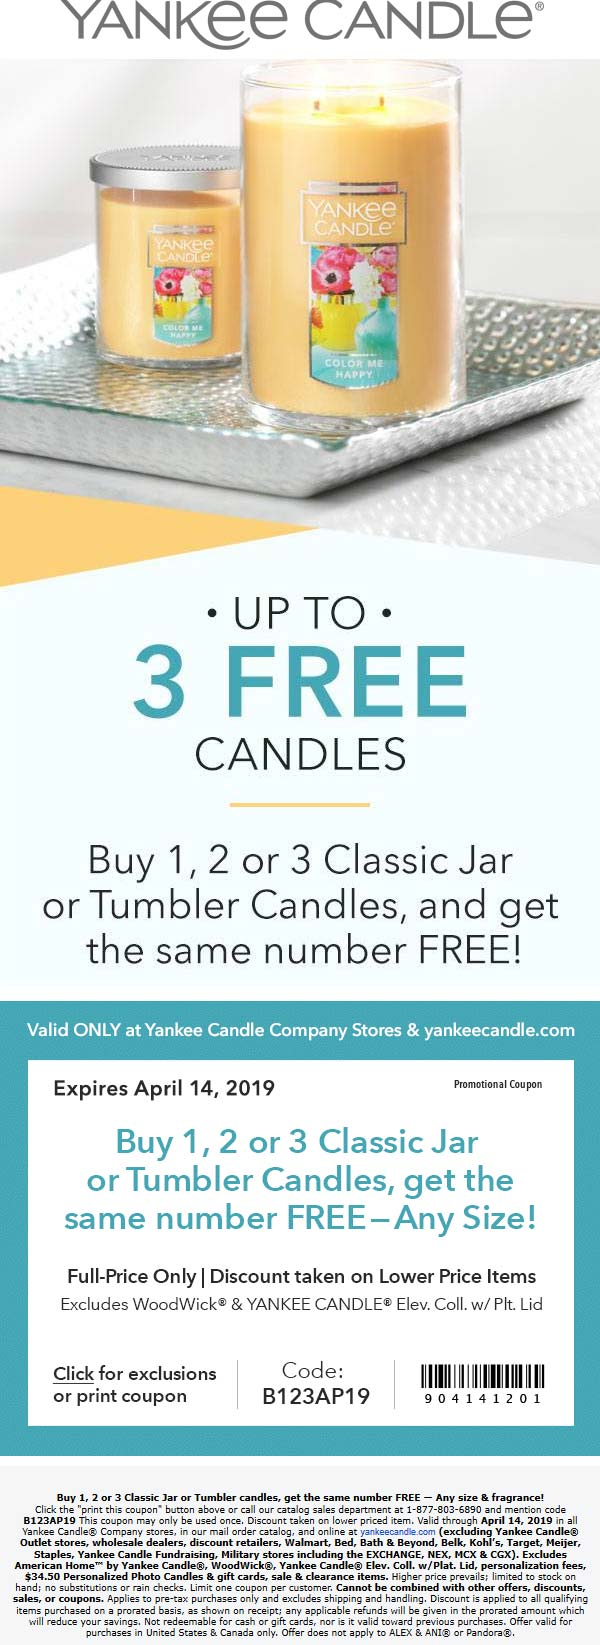 Yankee Candle Coupon November 2019 Second candle free at Yankee Candle, or online via promo code B123AP19